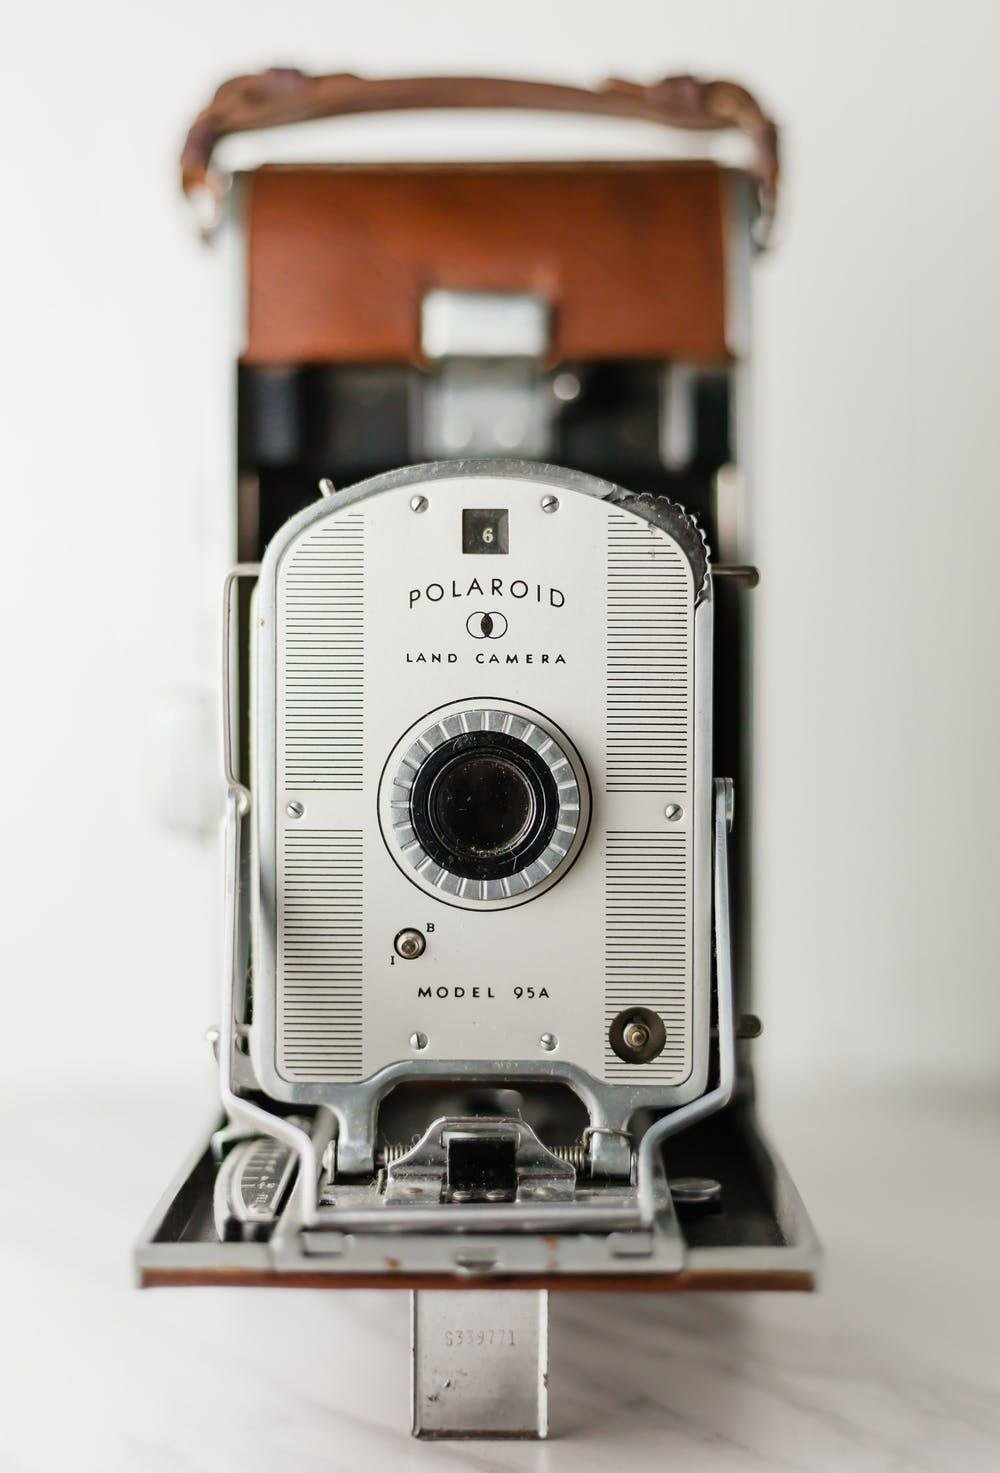 Polaroid Inventor Edwin Land Gave Us More Than Just Instant Photos